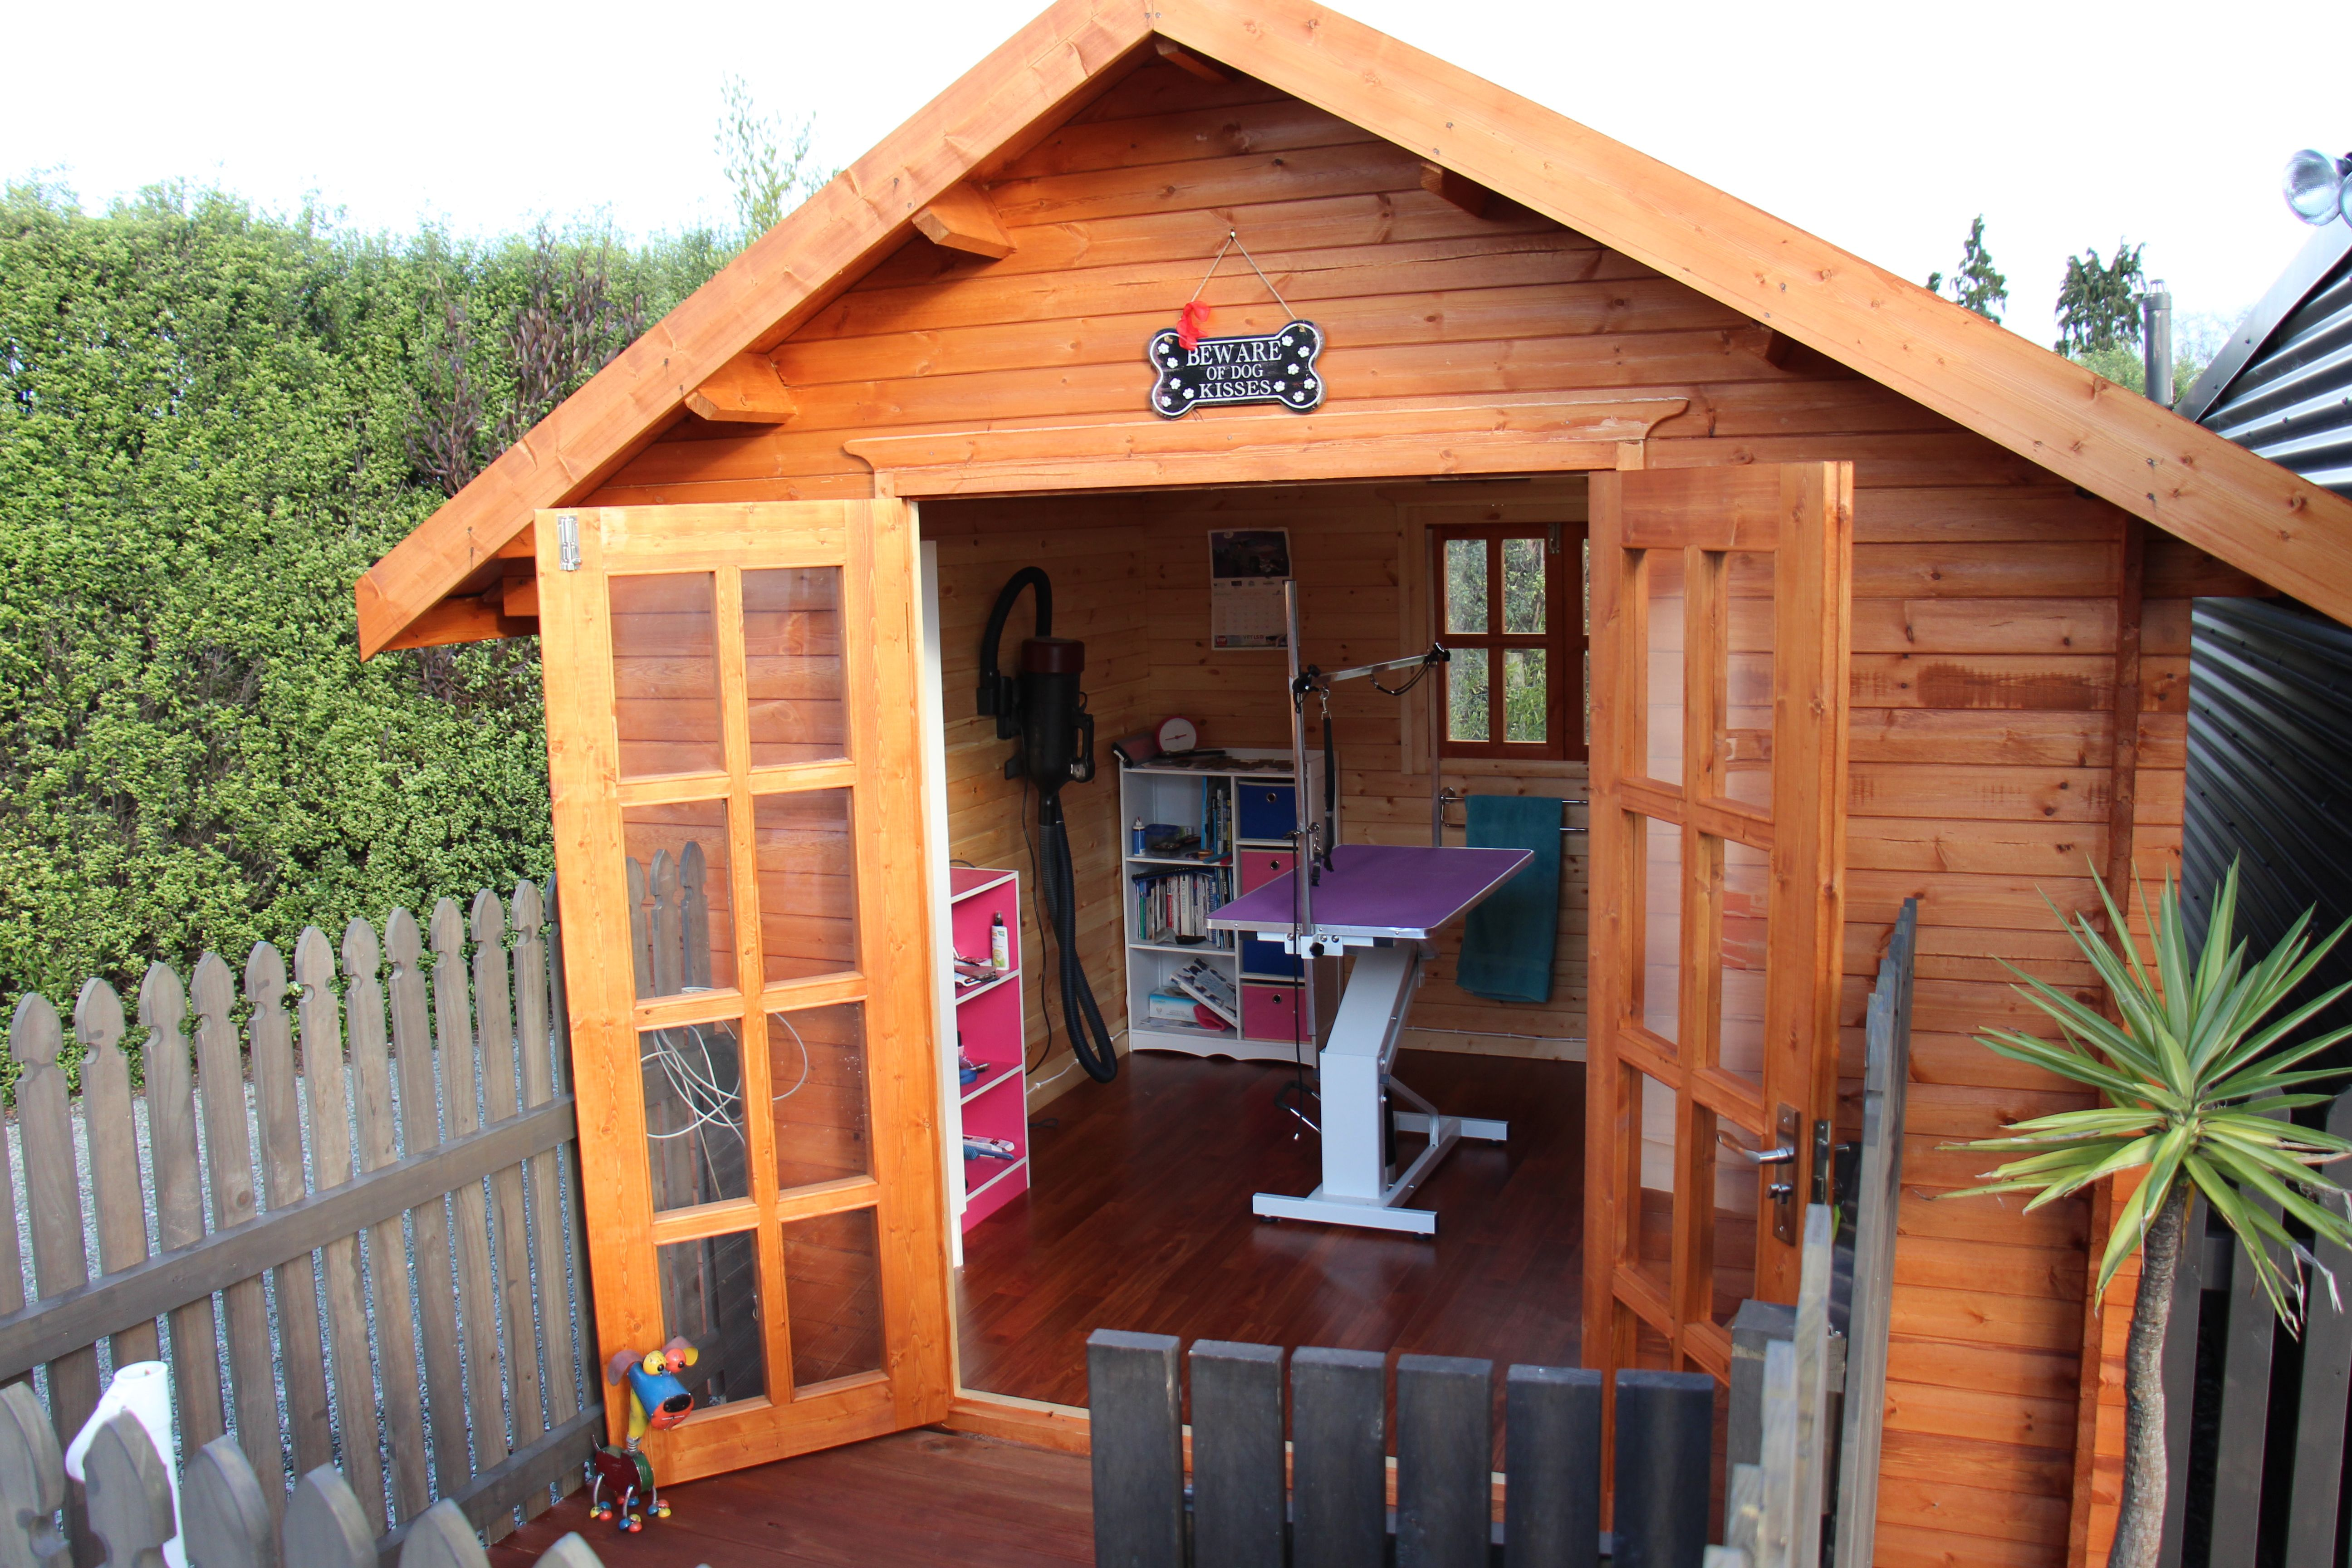 U0027Doggy Day Careu0027   Use A She Shed For Your Own Home Business.